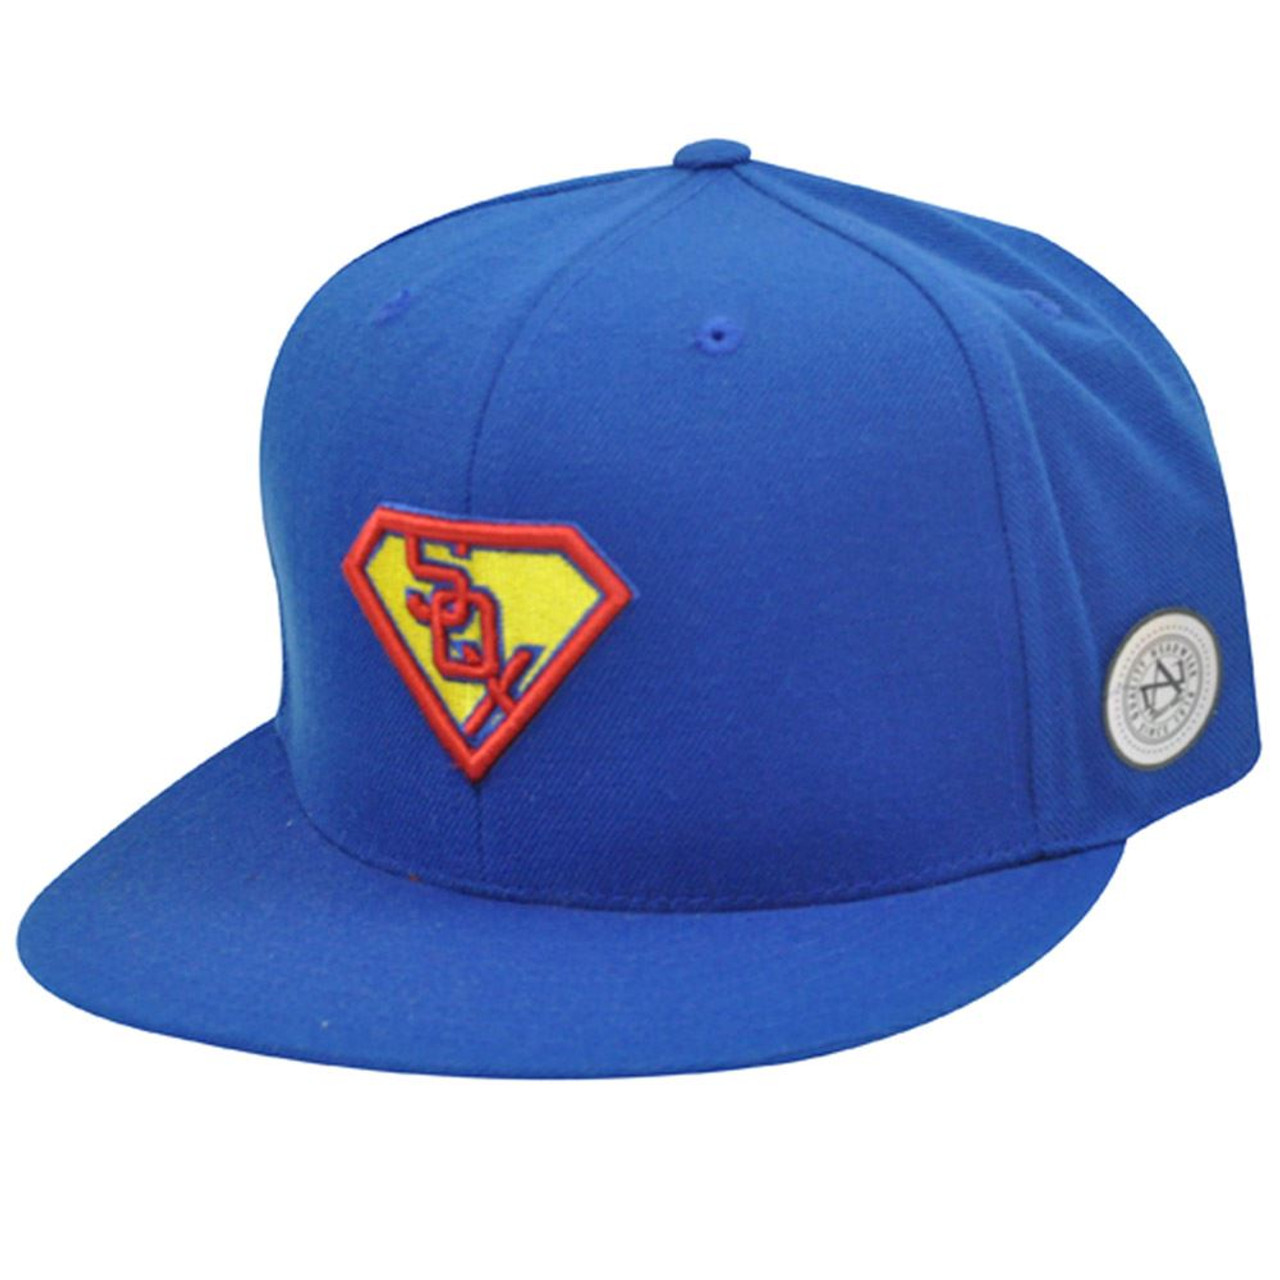 c83ab9f4a32f59 MLB CHICAGO WHITE SOX FITTED FLAT 7 1/2 SUPERMAN HAT - Cap Store Online.com